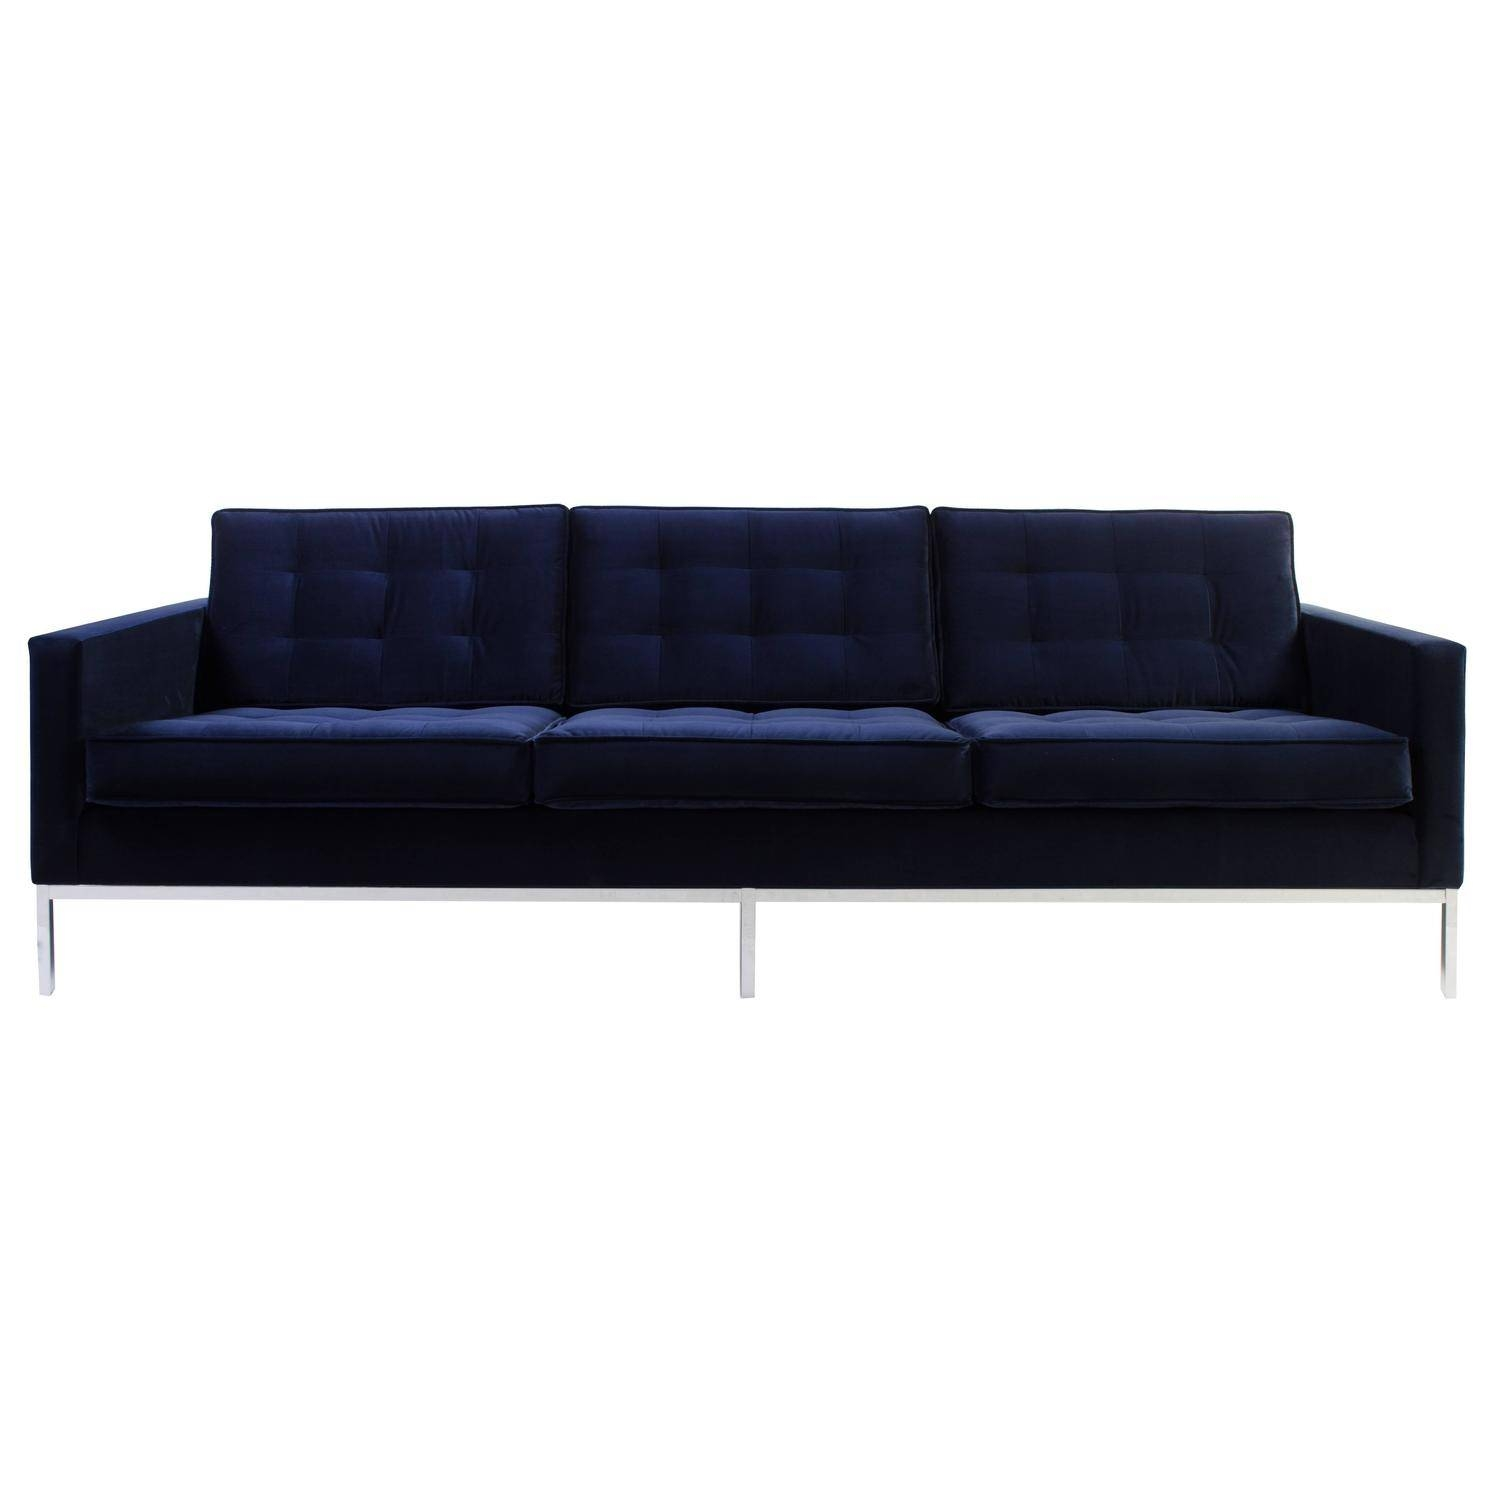 Florence Knoll Style Steelcase Sofa For Sale At 1Stdibs regarding Florence Knoll Style Sofas (Image 18 of 25)